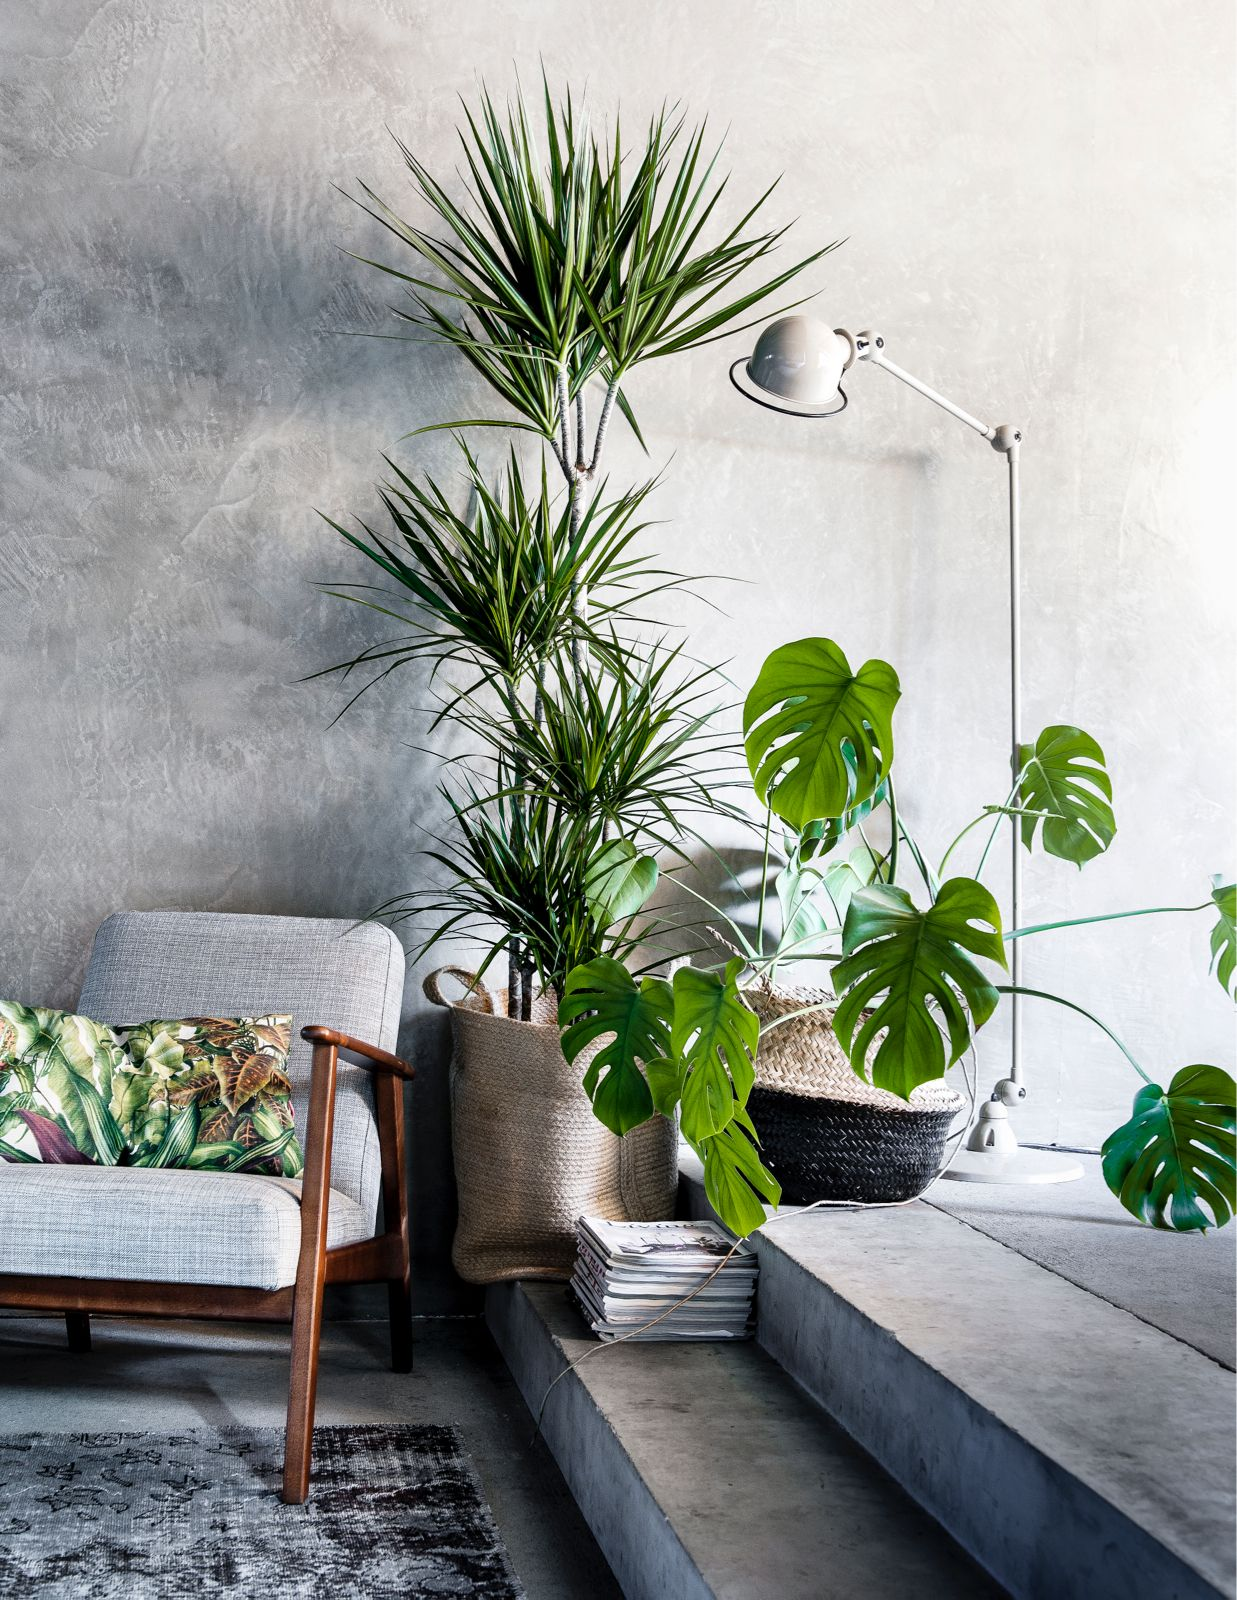 7 ways to add wow factor to any room | plants, room and interiors